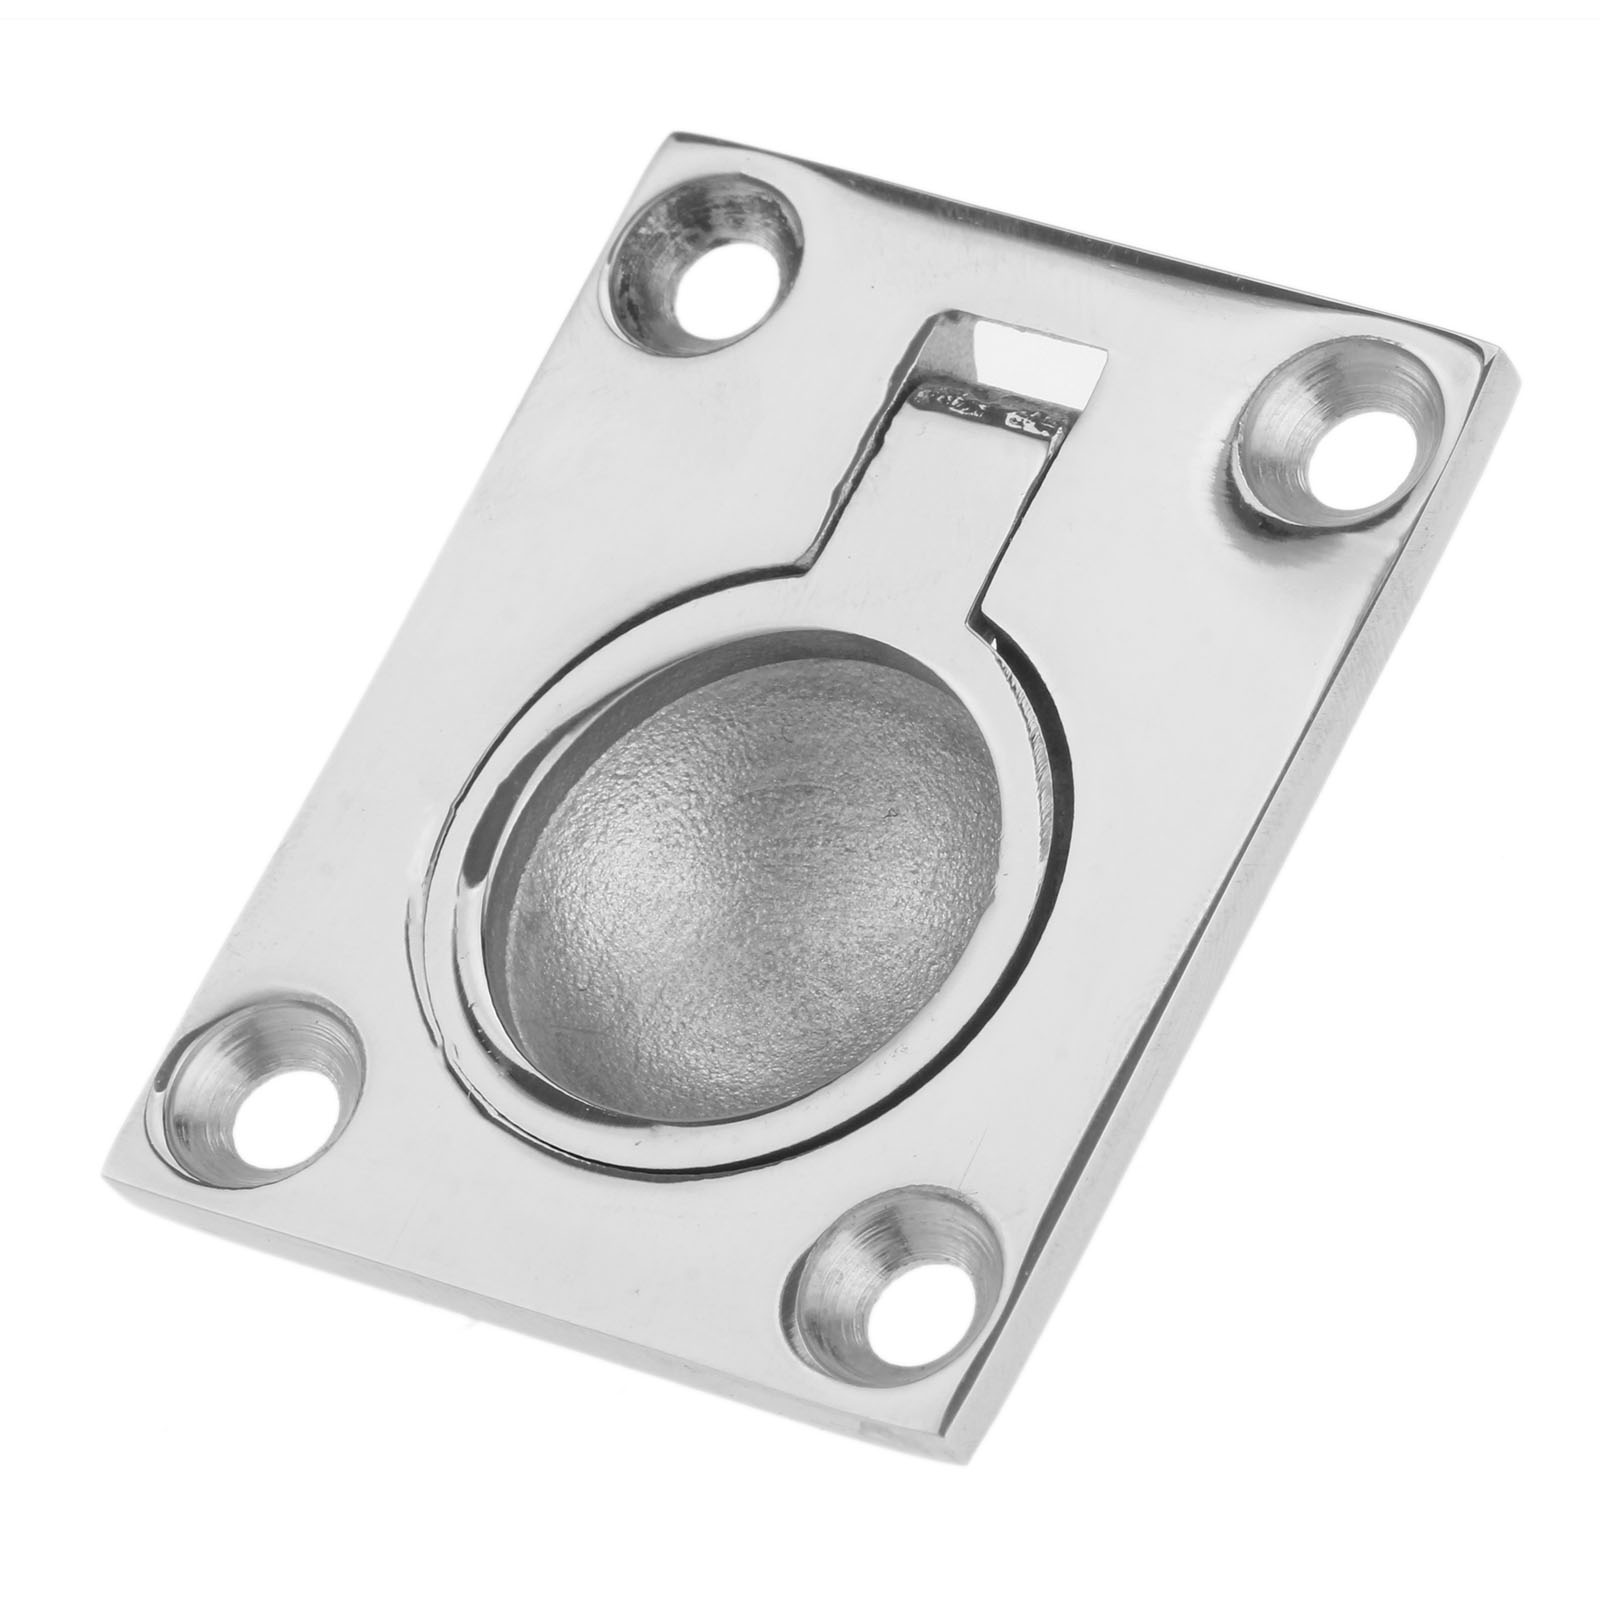 Boat Marine Stainless Steel Round Flush Lift Ring Hatch Pull Handle 49mm